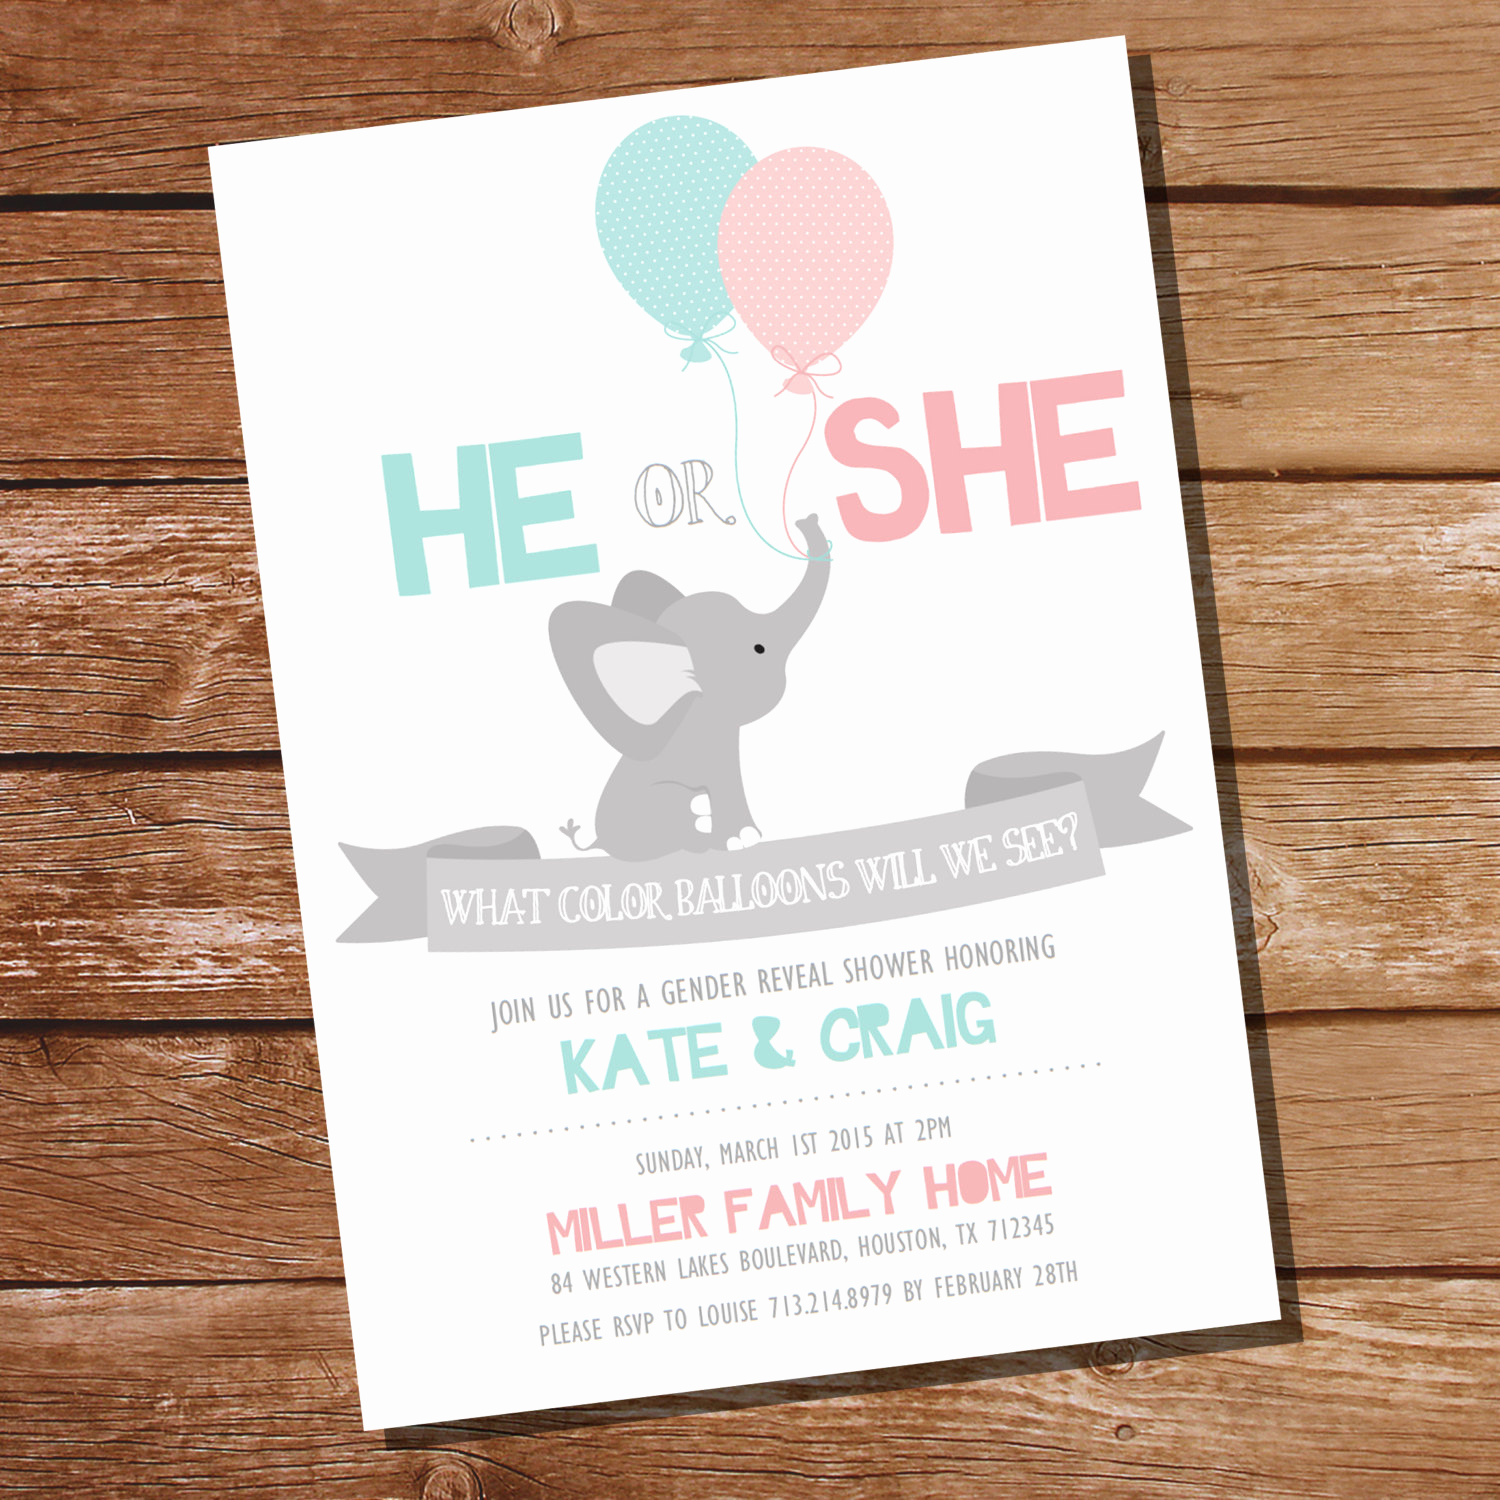 Gender Reveal Invitation Ideas Luxury He or She Gender Reveal Party Invitation Elephant Gender